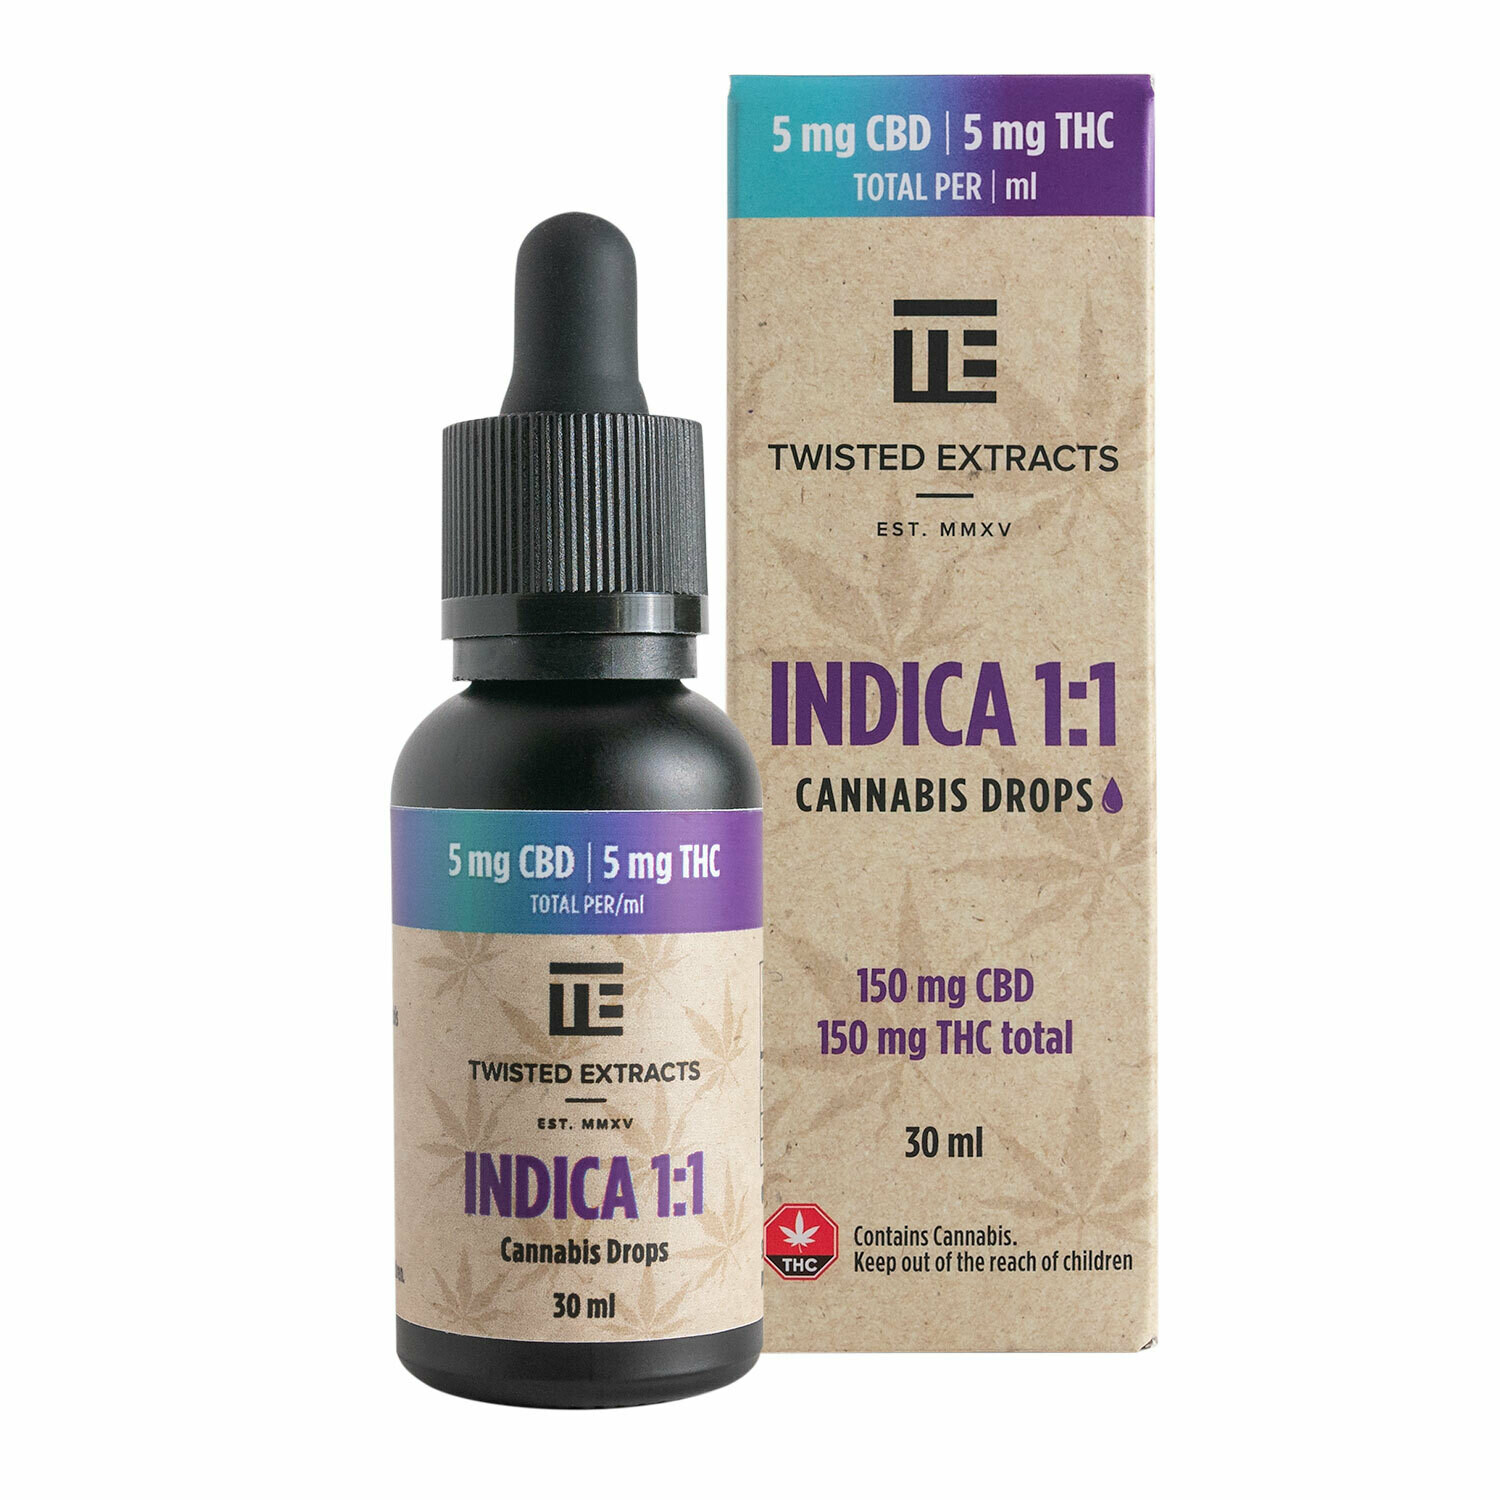 (150mg THC + 150mg CBD) Indica 1:1 Oil Drops By Twisted Extracts